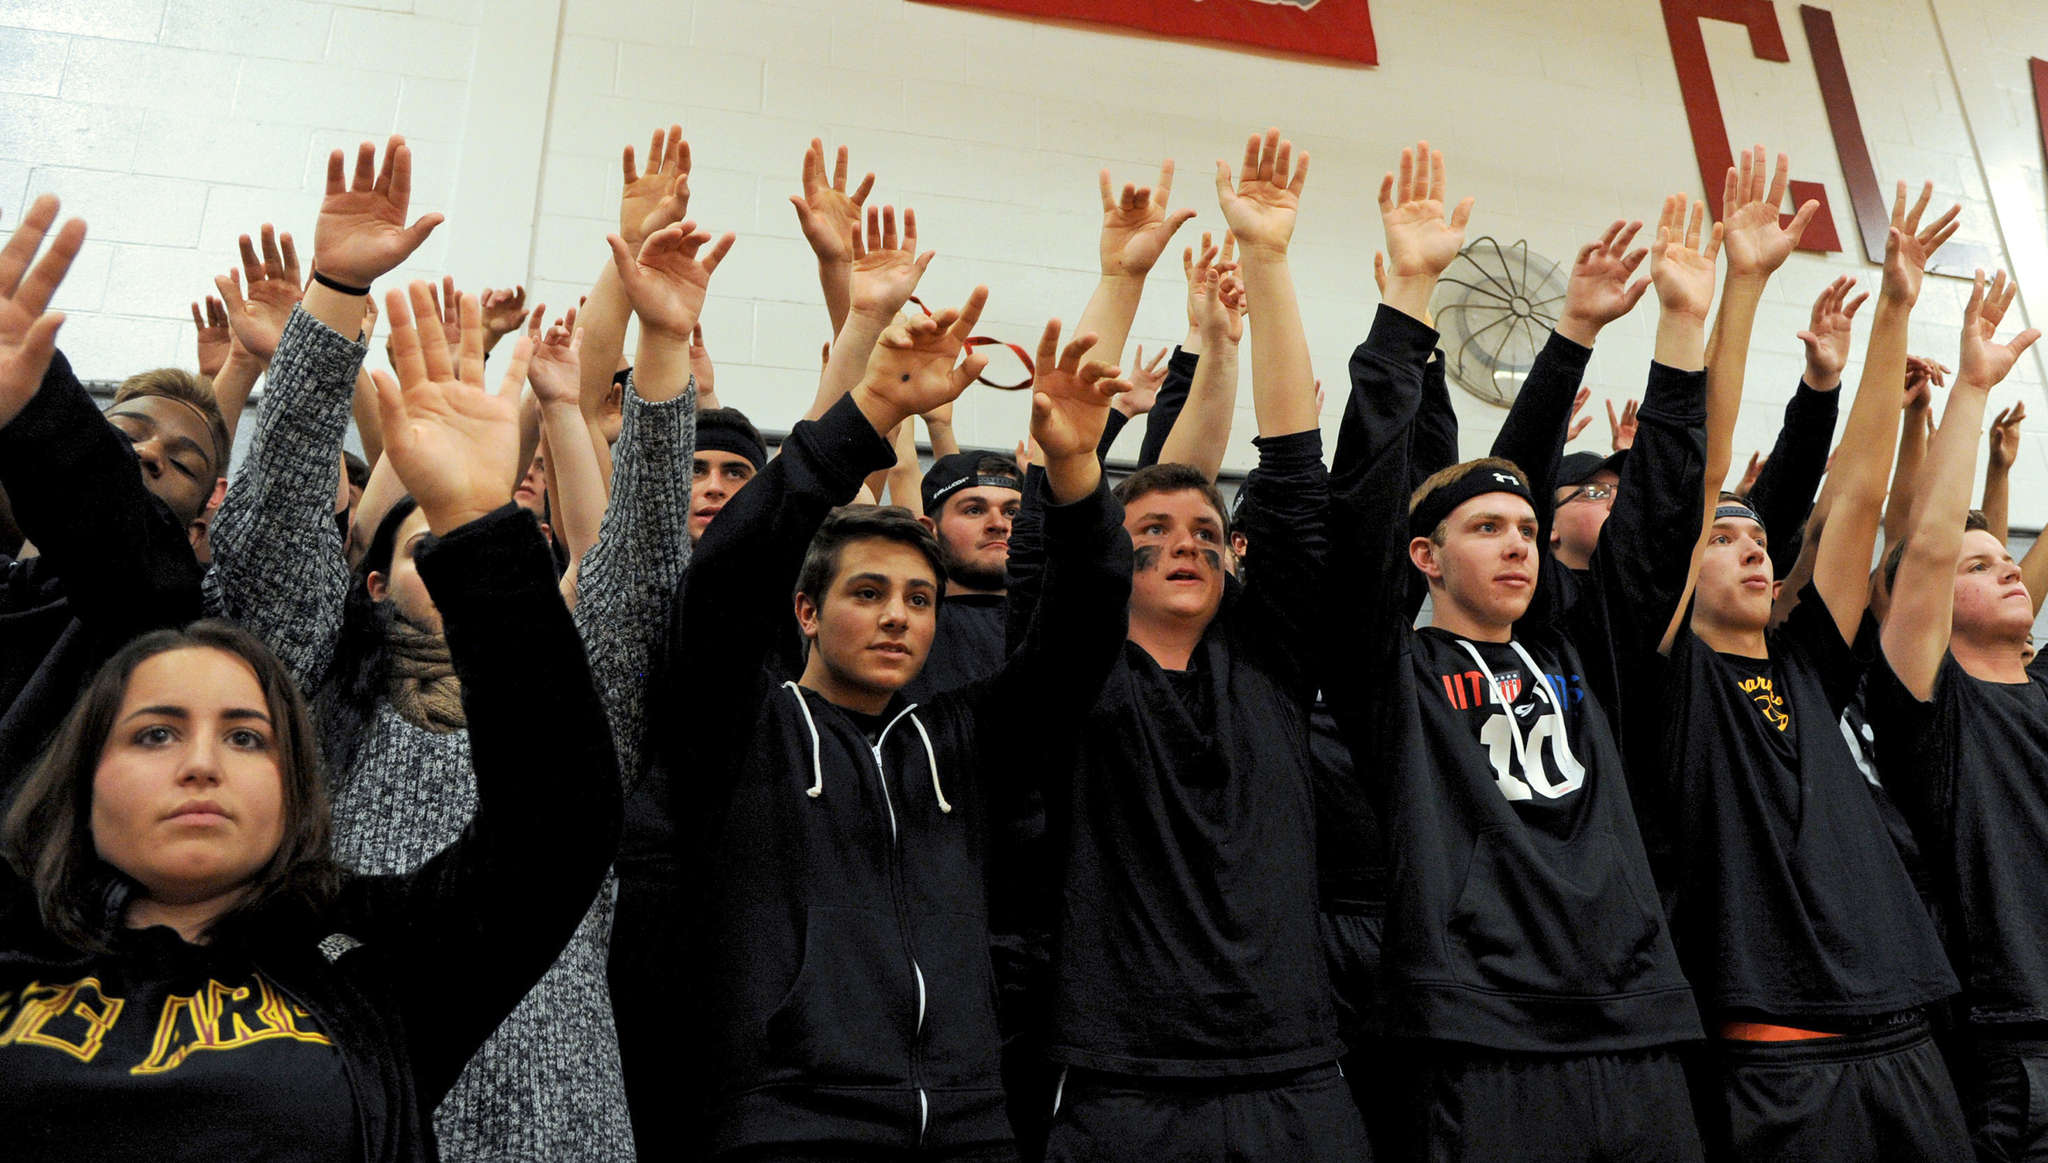 Haddon Heights´ Garnet Crazies, the student cheering section, in action during a game at Haddon Twp. TOM GRALISH / Staff